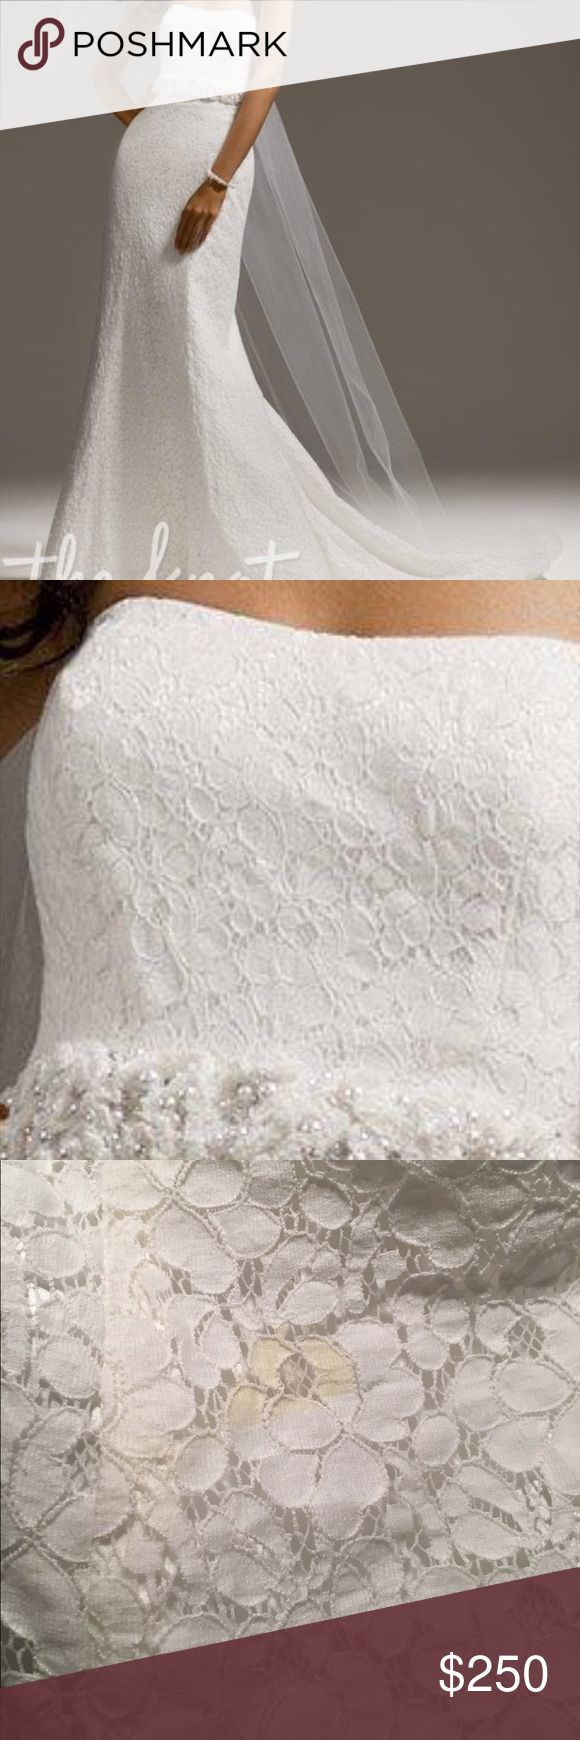 """Galina Wedding Dress Galina size 10 wedding dress style kp3221. Hemmed for 5'3"""" with 3 inch heels. One spot on it (see photo) located on the front under breast. It has never been attempted to be cleaned. Belt not included. Purchased from David's Bridal. David's Bridal Dresses Wedding"""